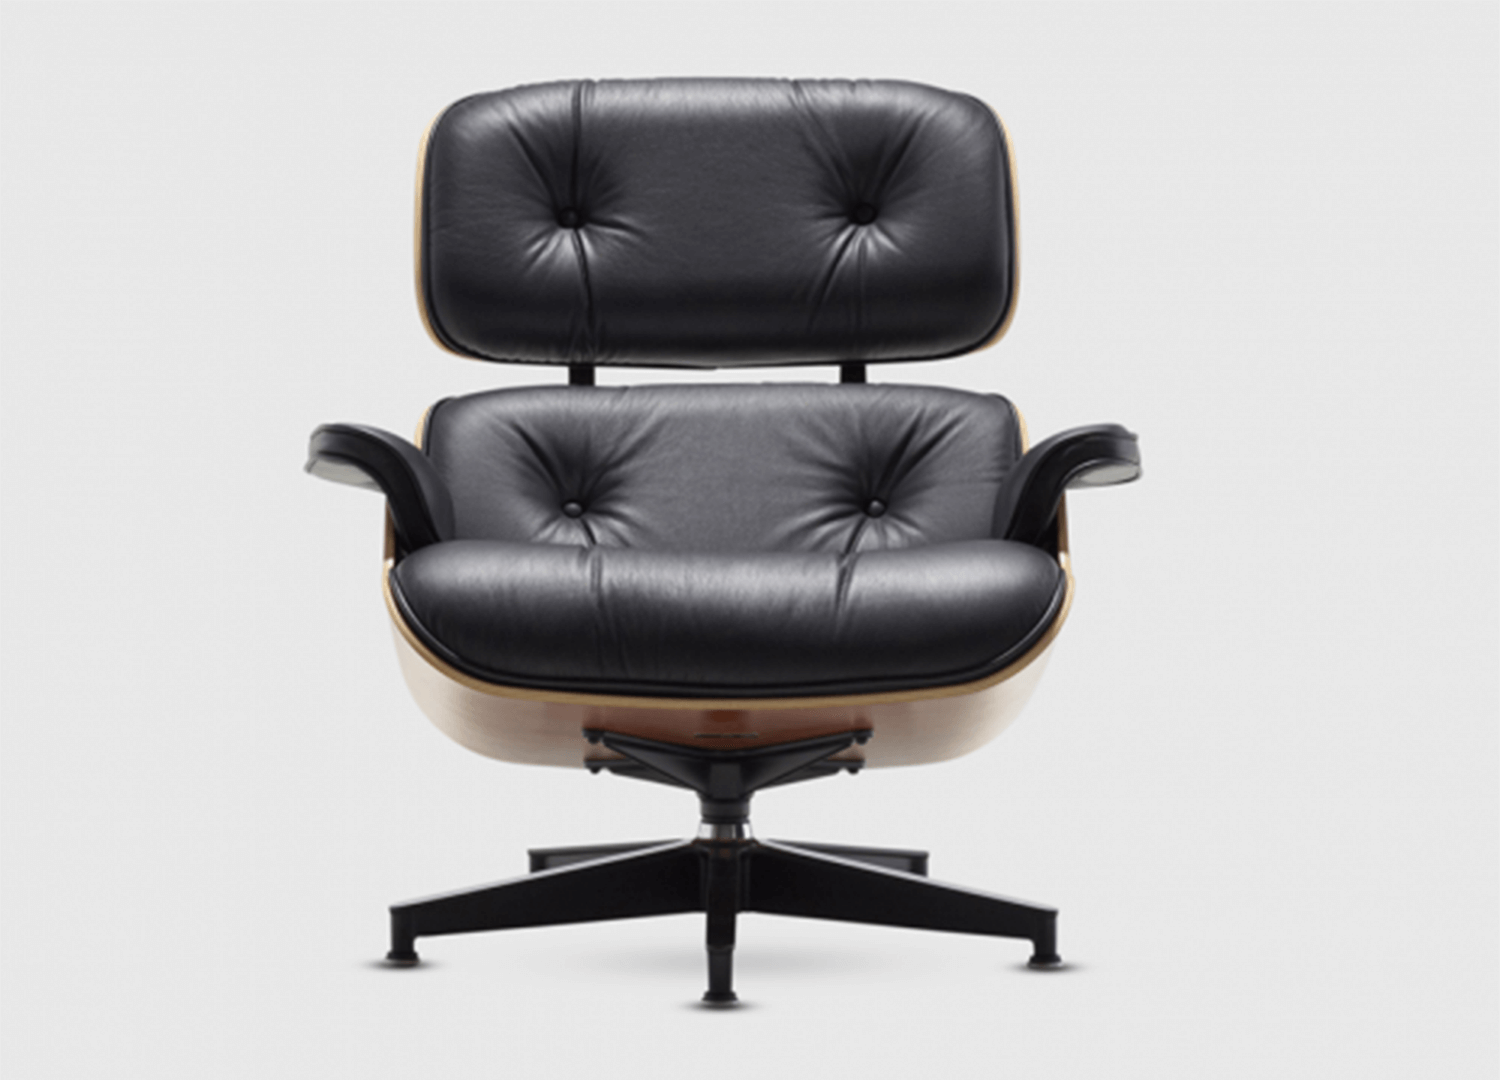 est living design directory living edge eames lounge chair.01 1024x737 copy